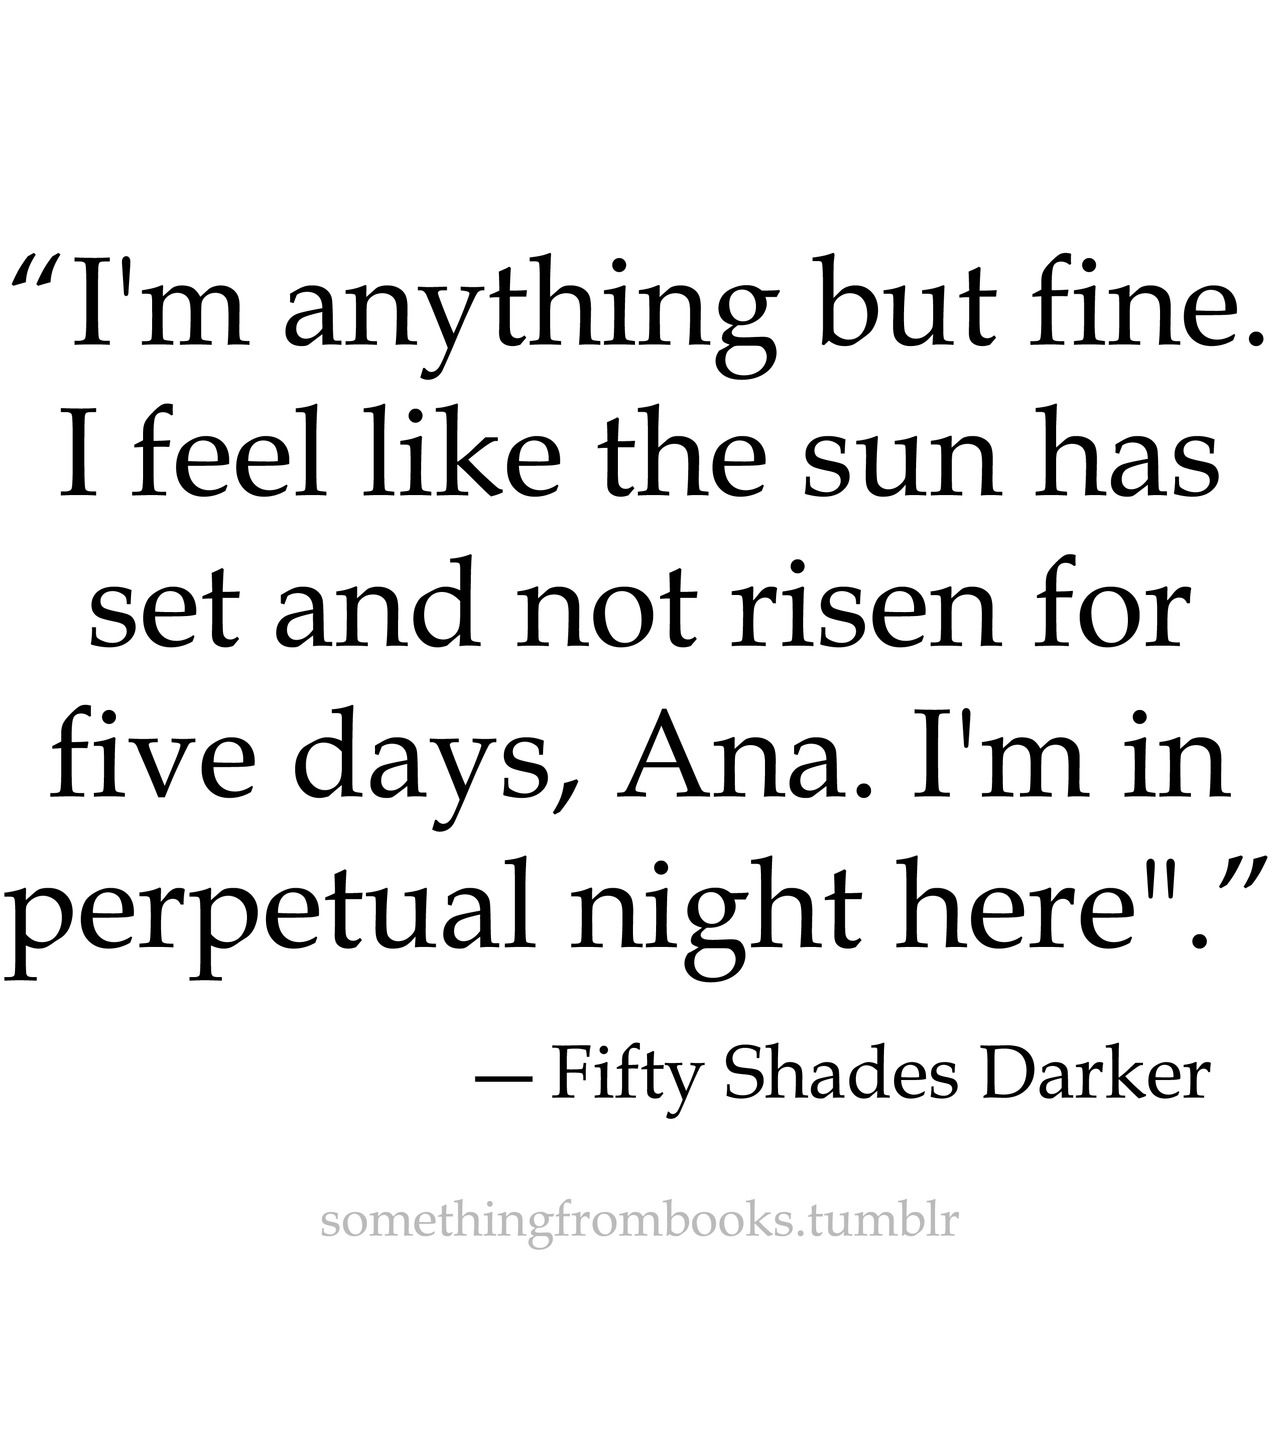 fifty shades of grey christian grey ana steele quote love marriage fifty shades of grey on instagram i m anything but fine i feel like the sun has not risen for five days ana i m in perpetual night here